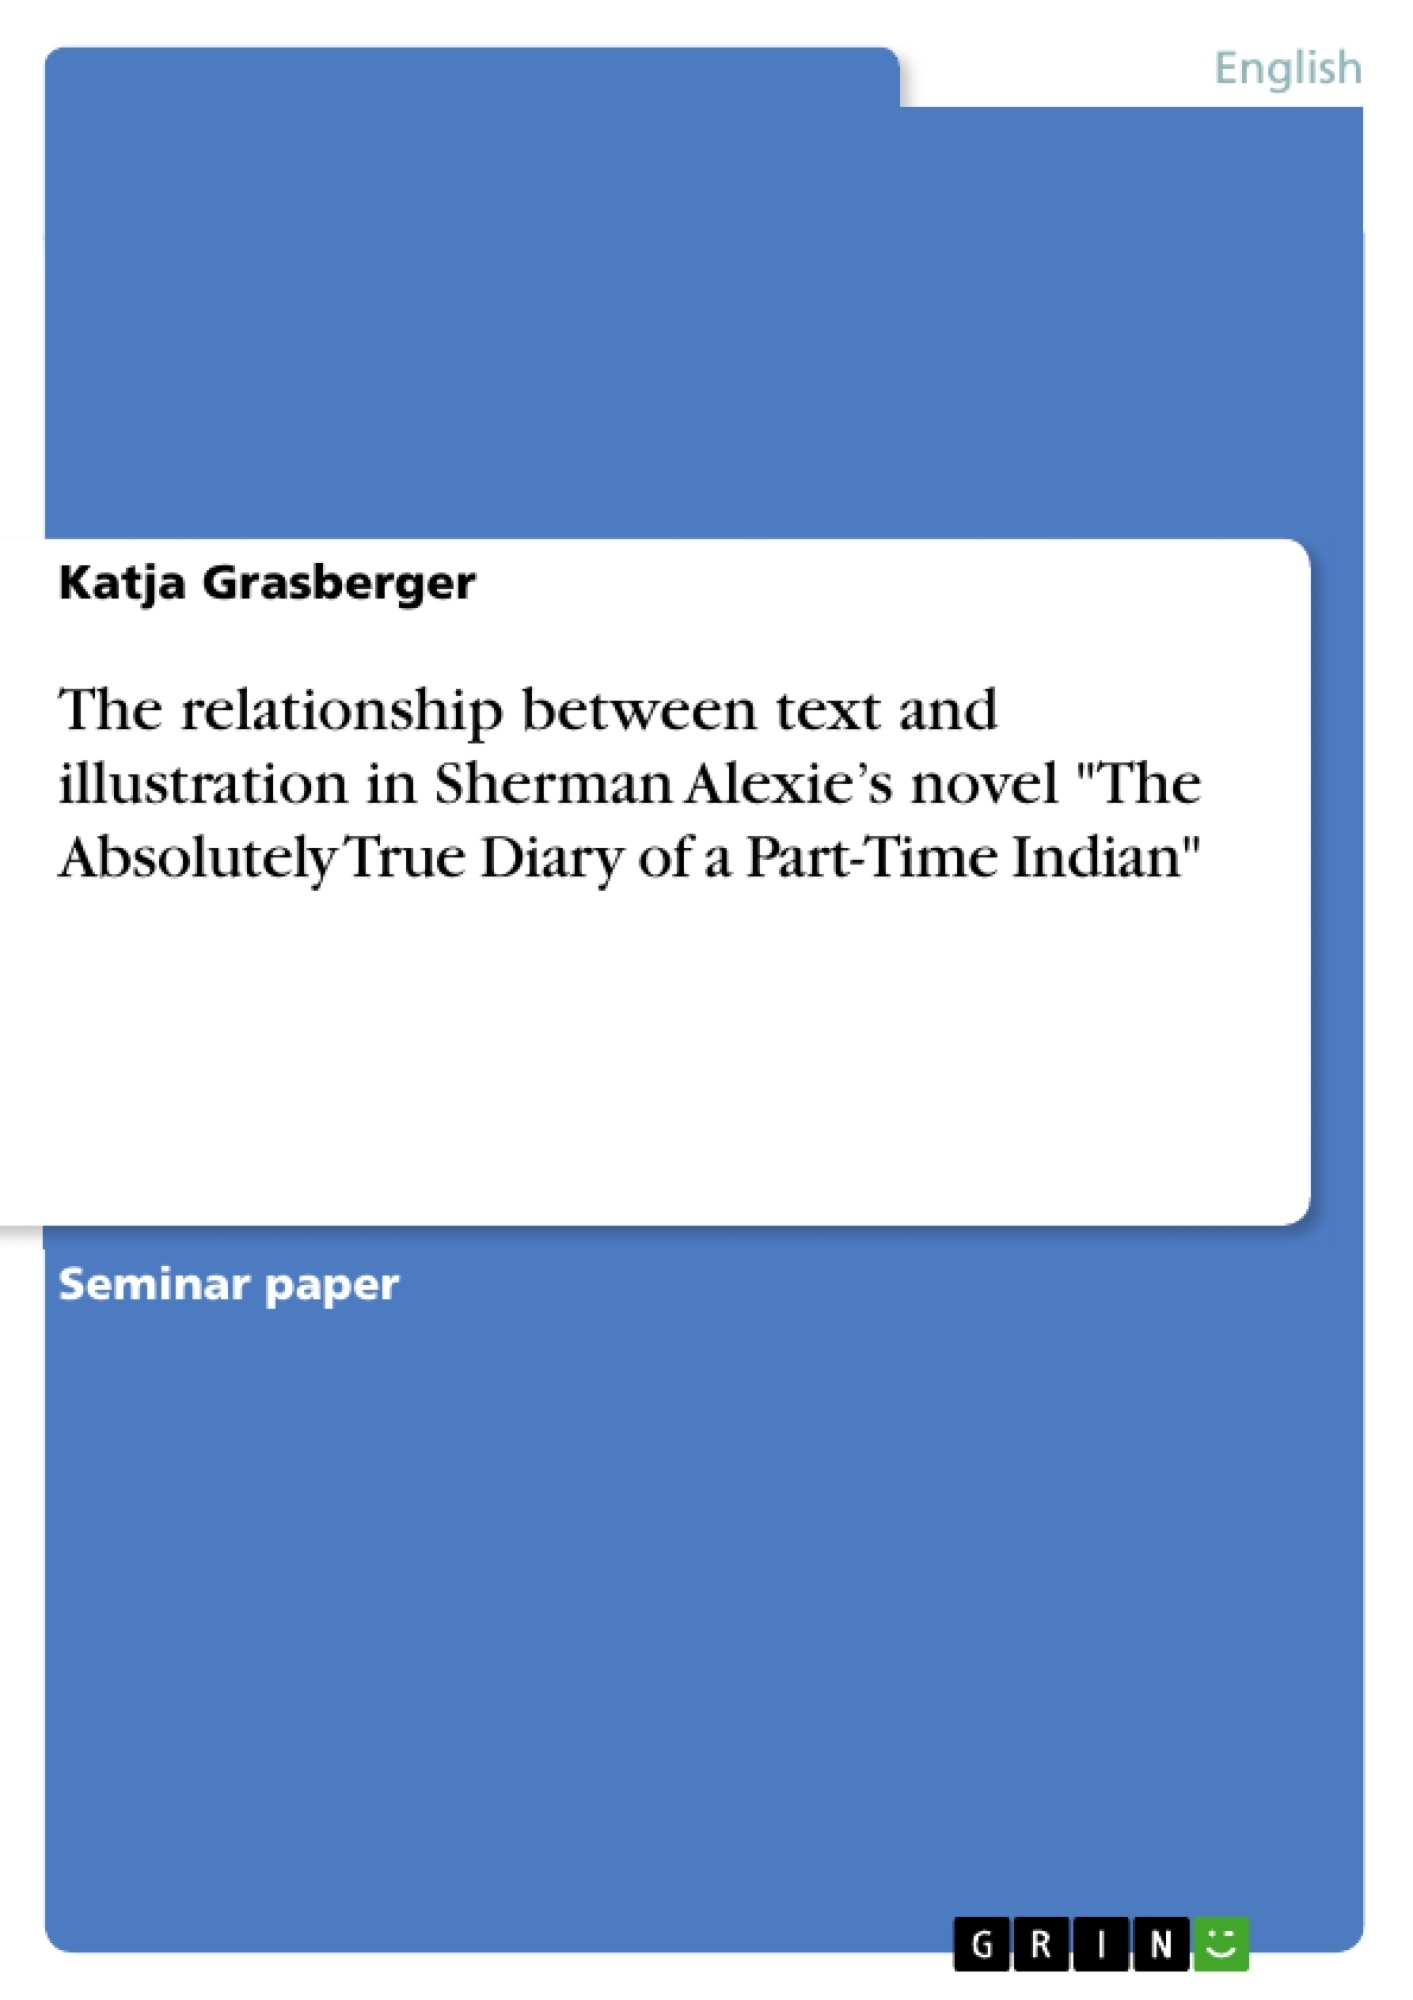 the relationship between text and illustration in sherman alexie s the relationship between text and illustration in sherman alexie s publish your master s thesis bachelor s thesis essay or term paper